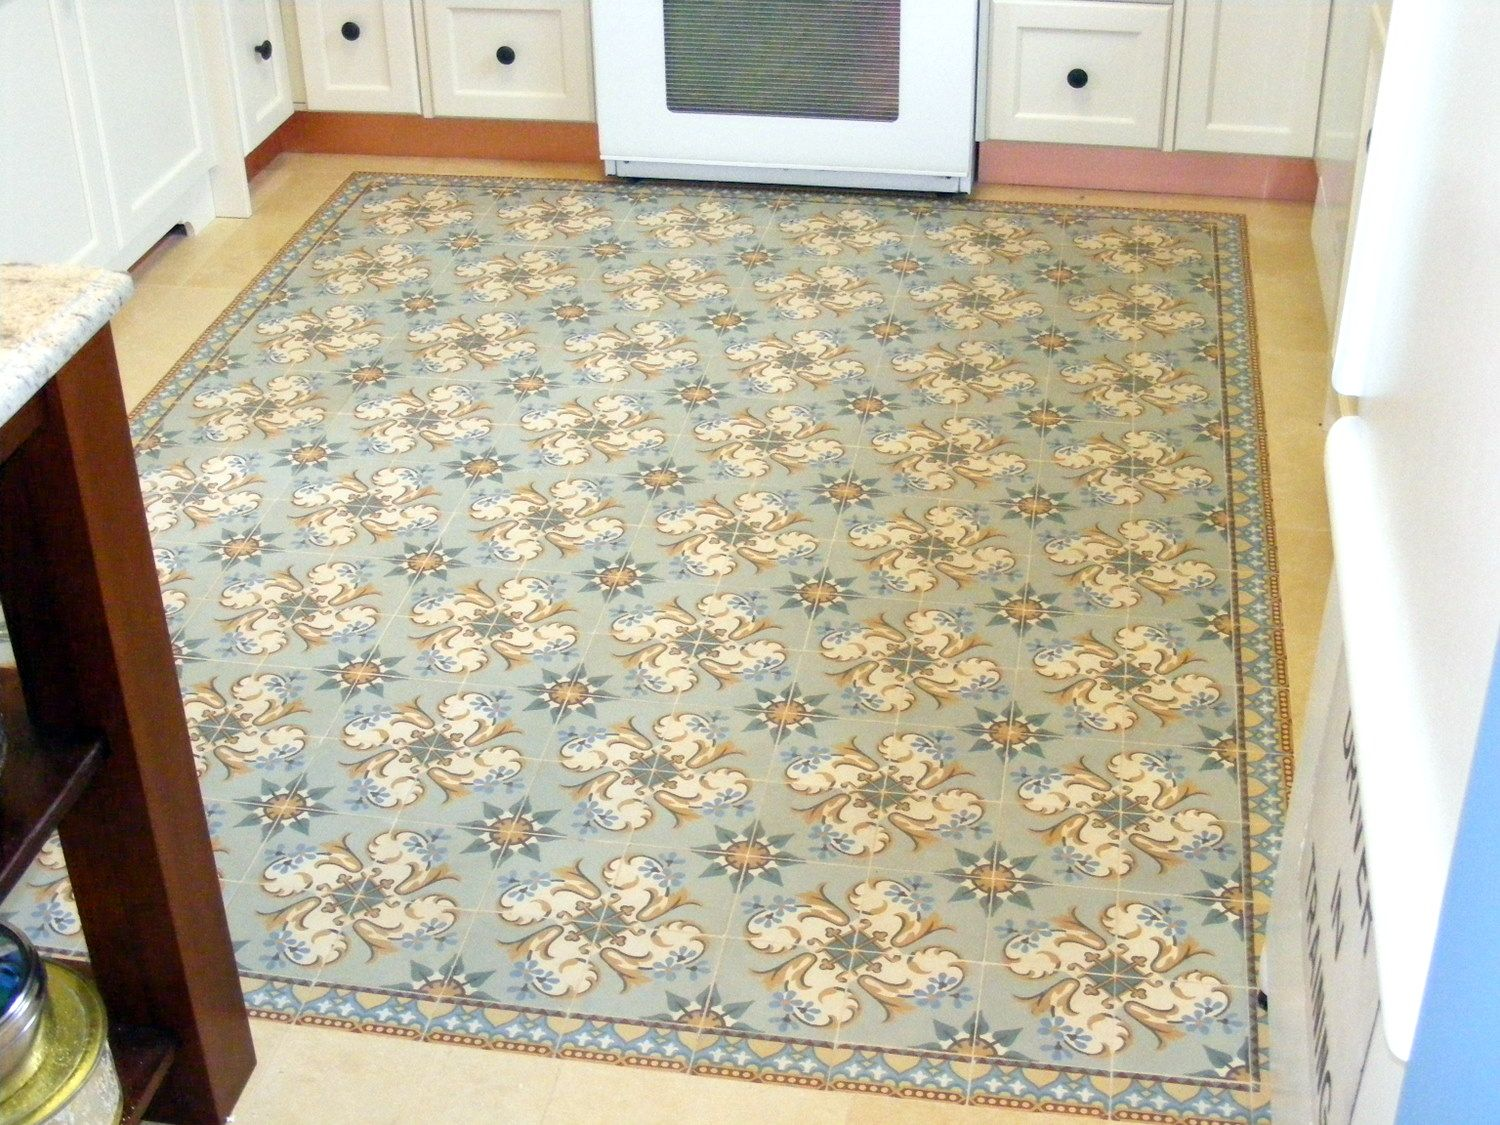 Carpet floor tiles for sale image collections tile flooring pin by victoria isabela on tiles for home pinterest canada pin by victoria isabela on tiles dailygadgetfo Choice Image